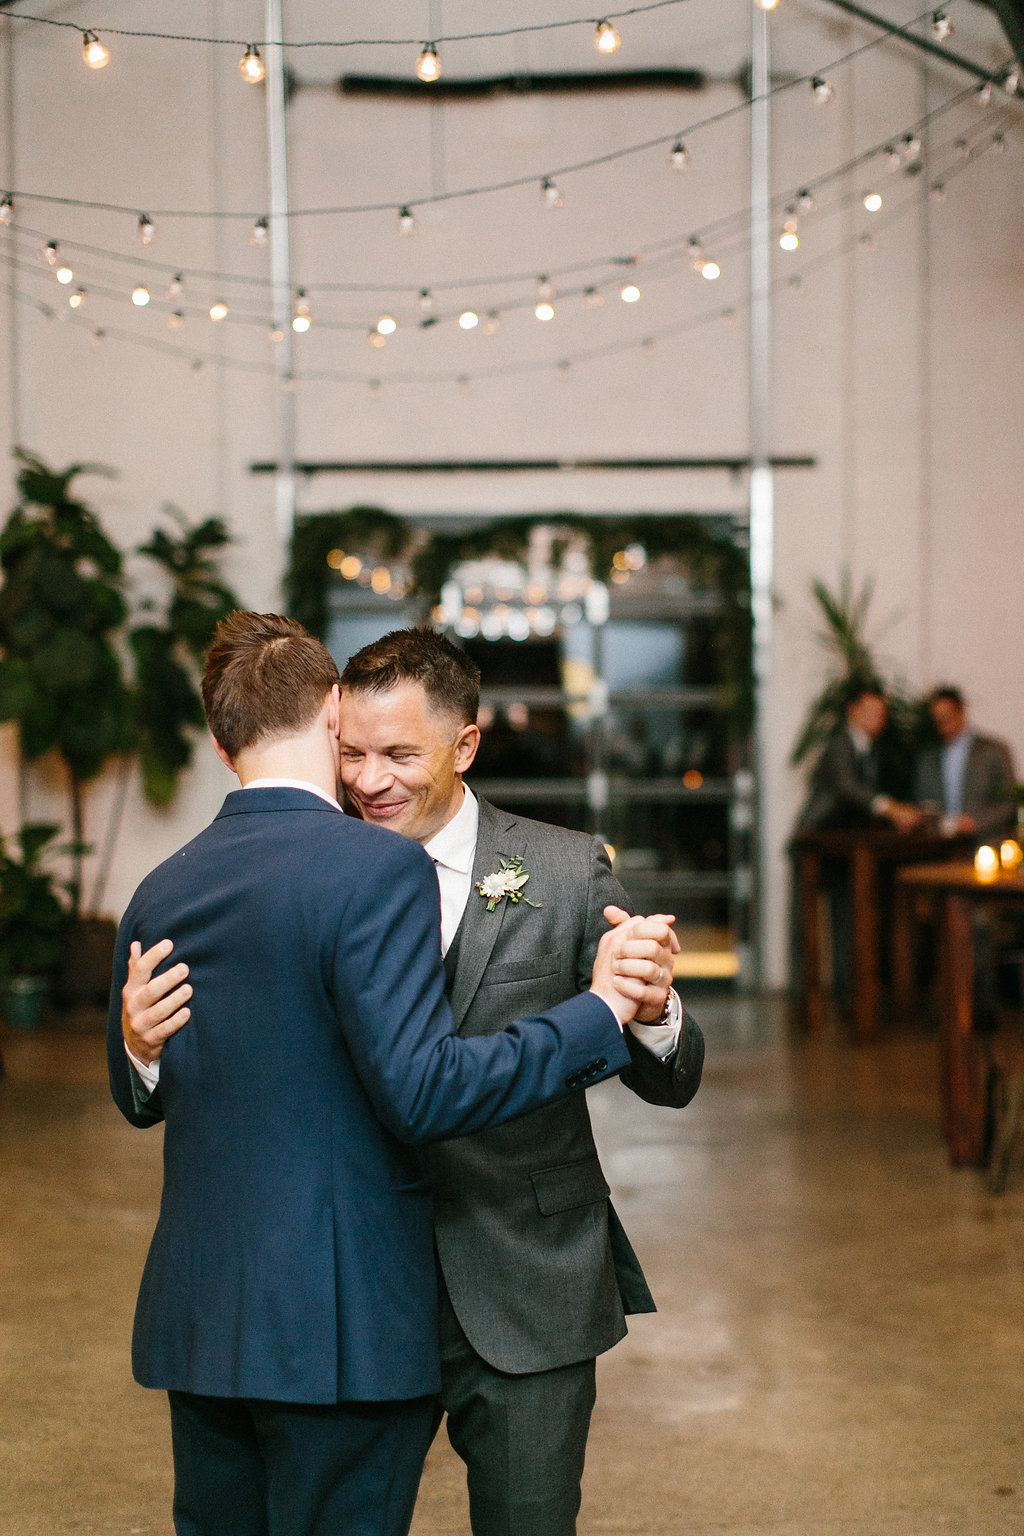 Carly Milbrath Photography   Justin and Jacob   PAIKKA Minnesota Wedding Venue   Same sex wedding with two grooms, first dance as husbands